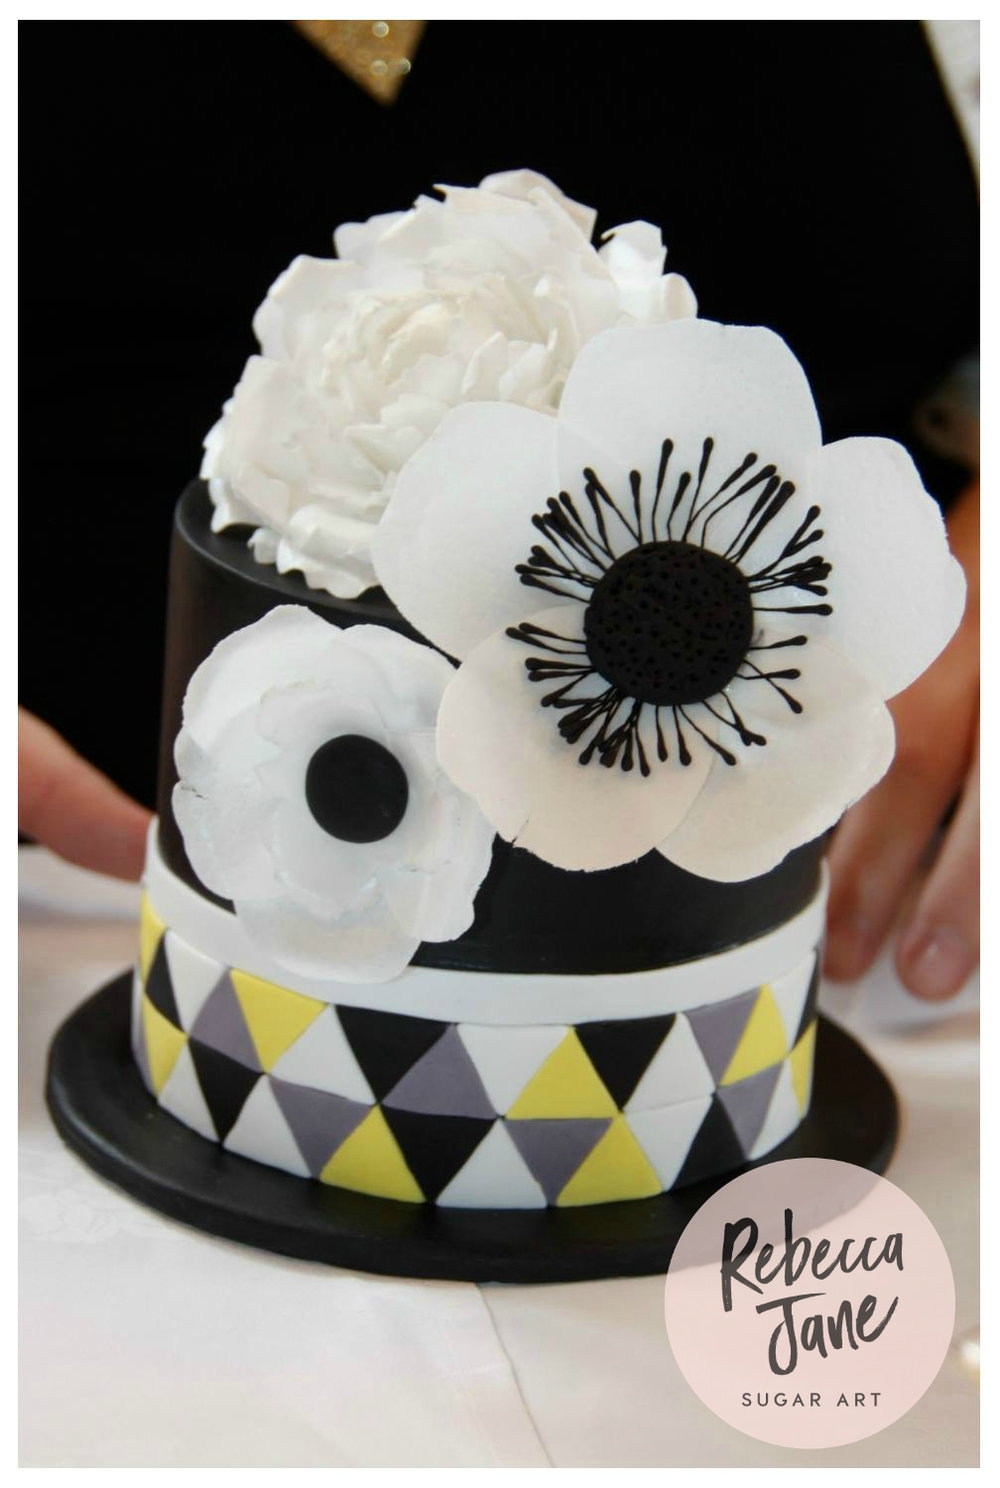 Rebecca Jane Sugar Art - black geometric cake with wafer paper flowers